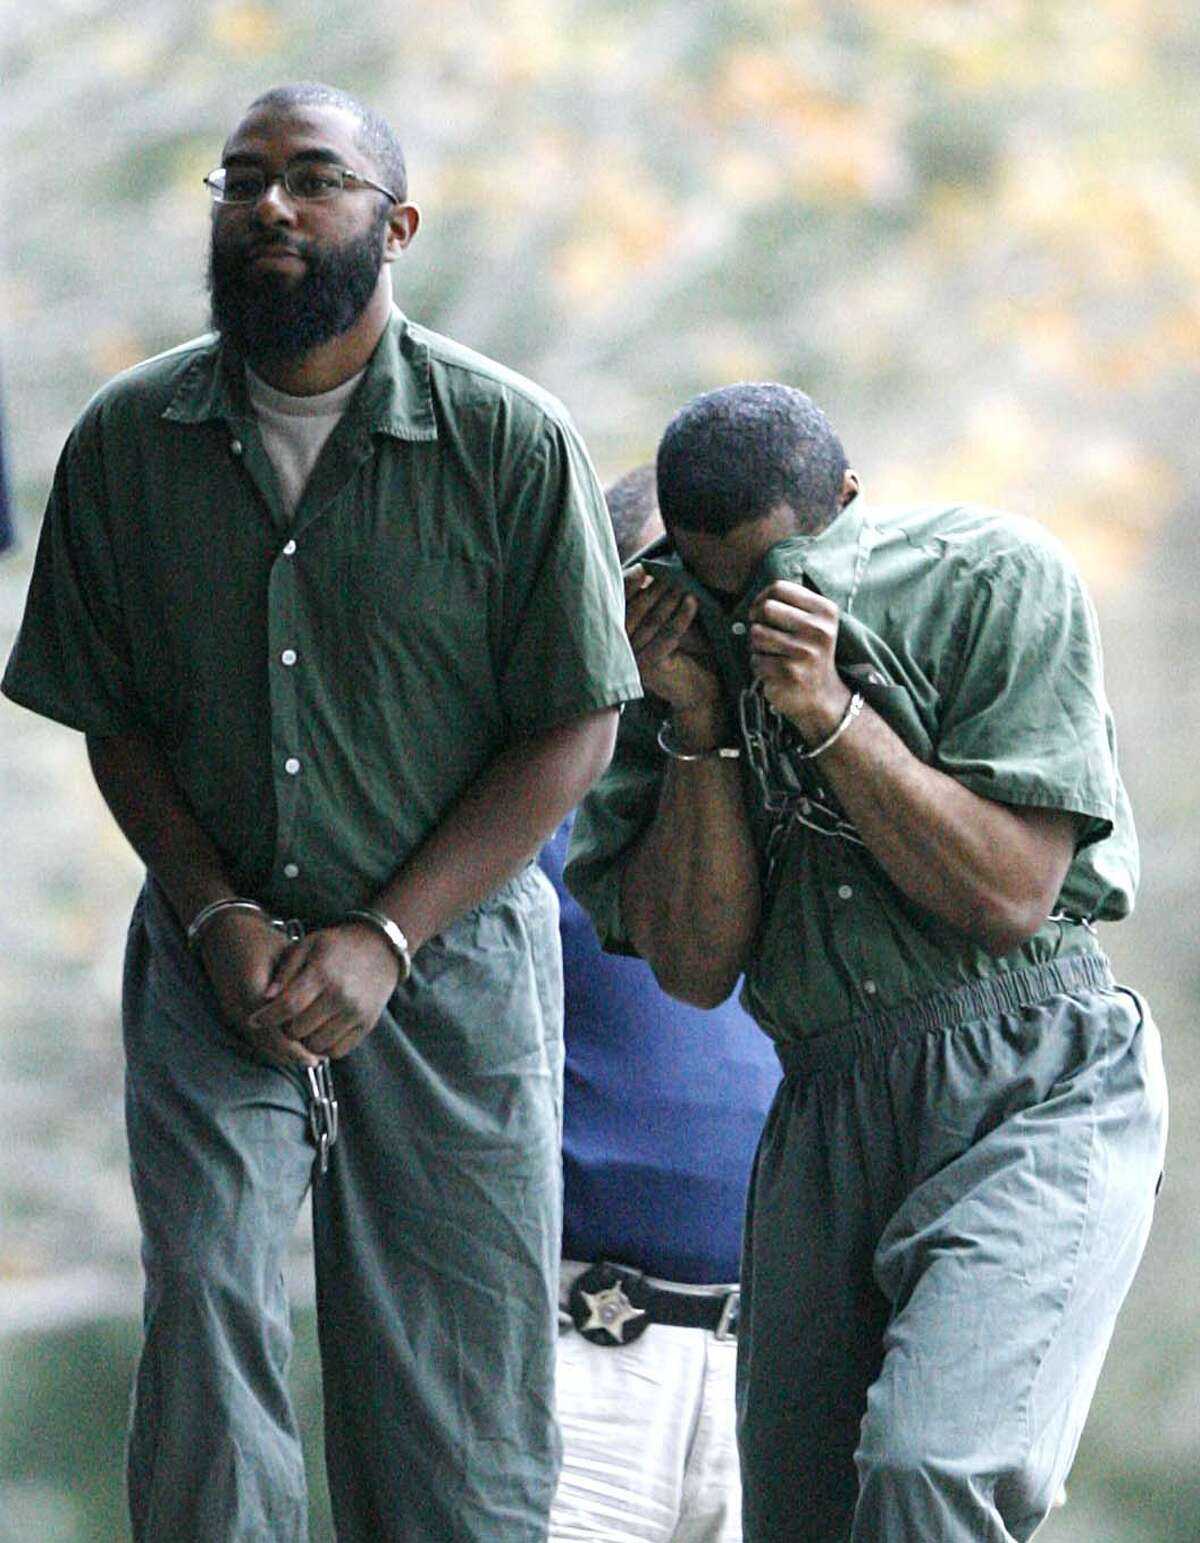 (l-r) Kobie Diallo Williams, also known as Abdul Kabir, (cq) who is charged with conspiring to join the Taliban and fight against U.S. forces, enters the Federal Courthouse, Along with Tyrone Williams (cq) Wednesday December 6,2006, in Houston, Texas, today begins the sentencing phase, for Tyrone Williams who was found guilty on all 58 counts on Monday, Dec. 4, 2006 for his role in the deaths of 19 illegal immigrants who were sealed inside his trailer in 2003. ( BILLY SMITH II/STAFF)